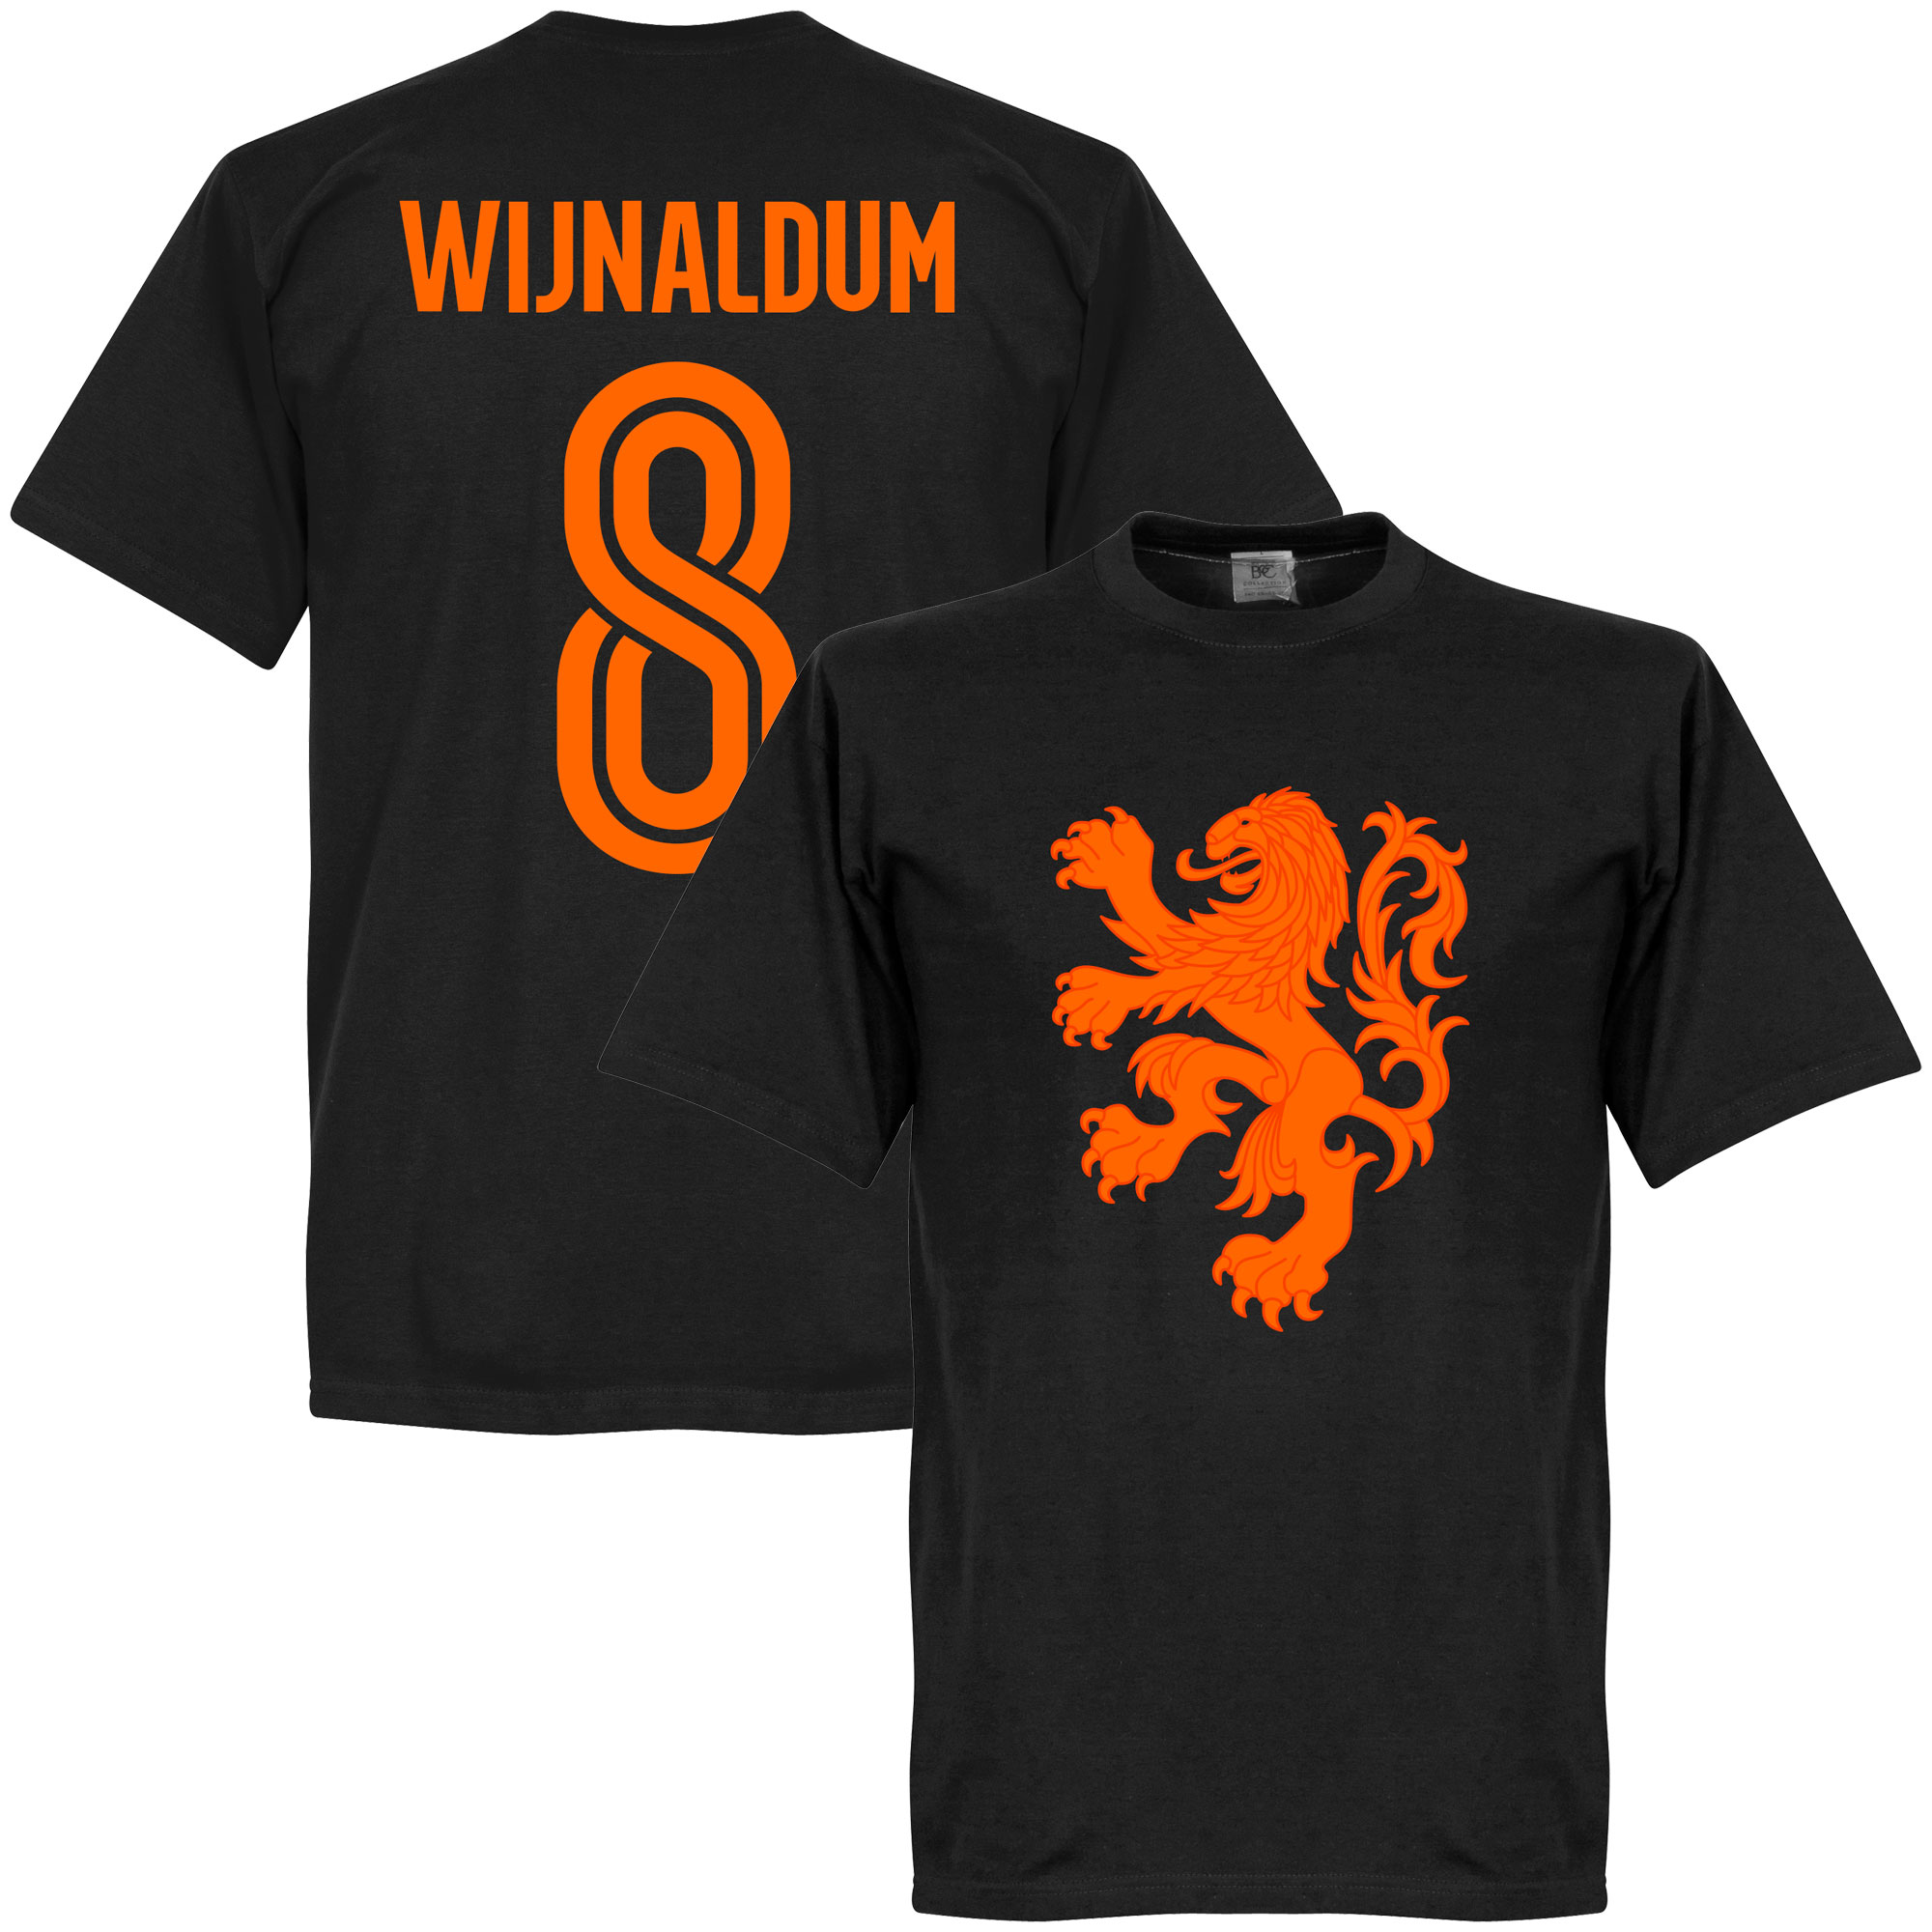 Holland Wijnaldum Lion Tee - Black - L